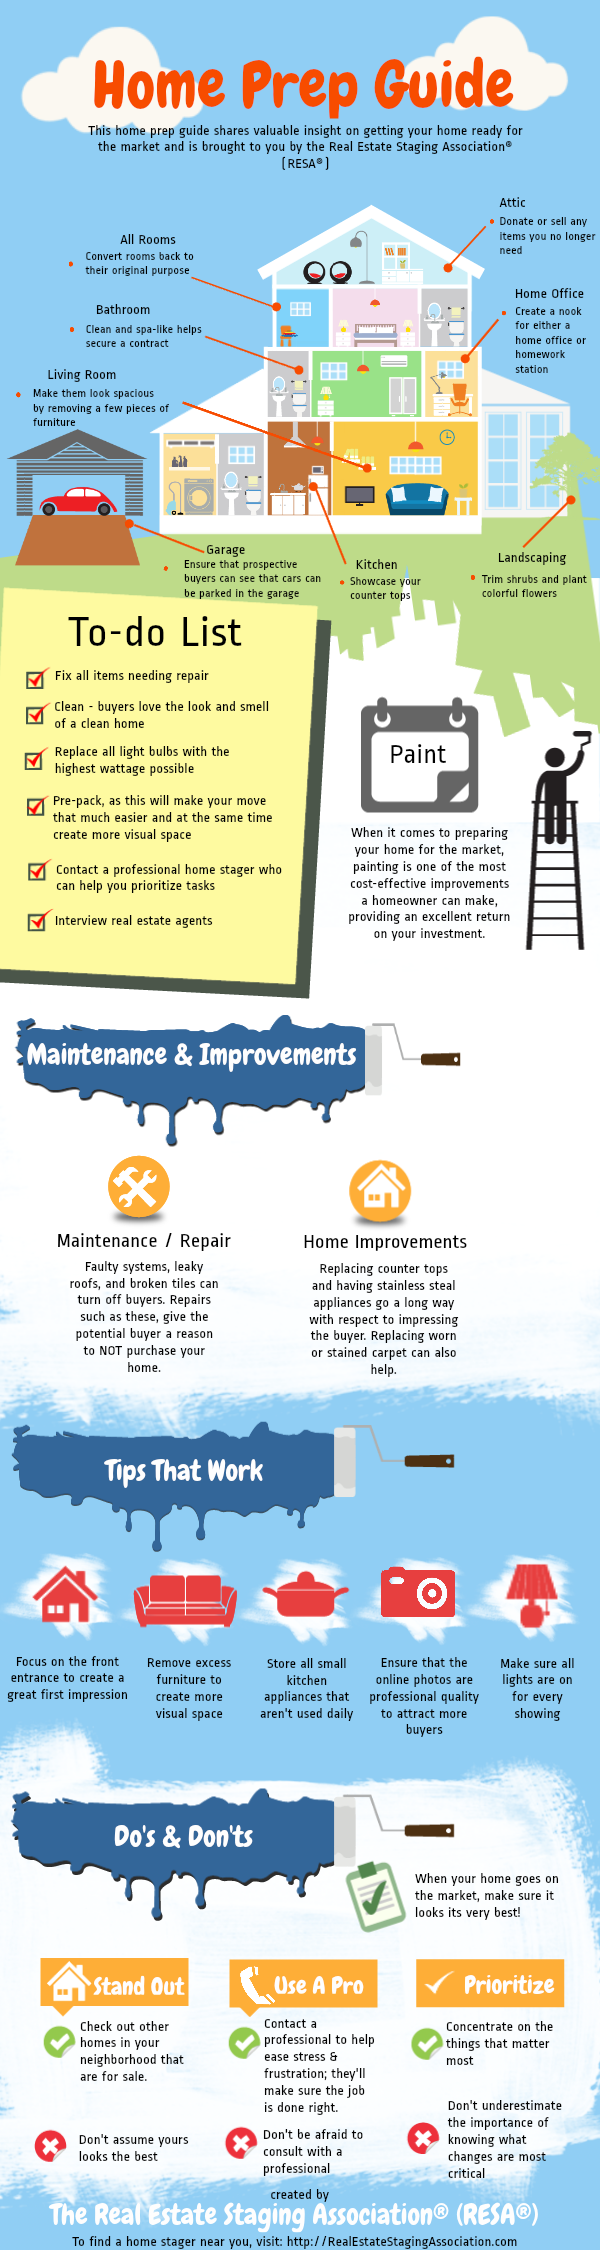 Home-Prep-Guide-Infographic